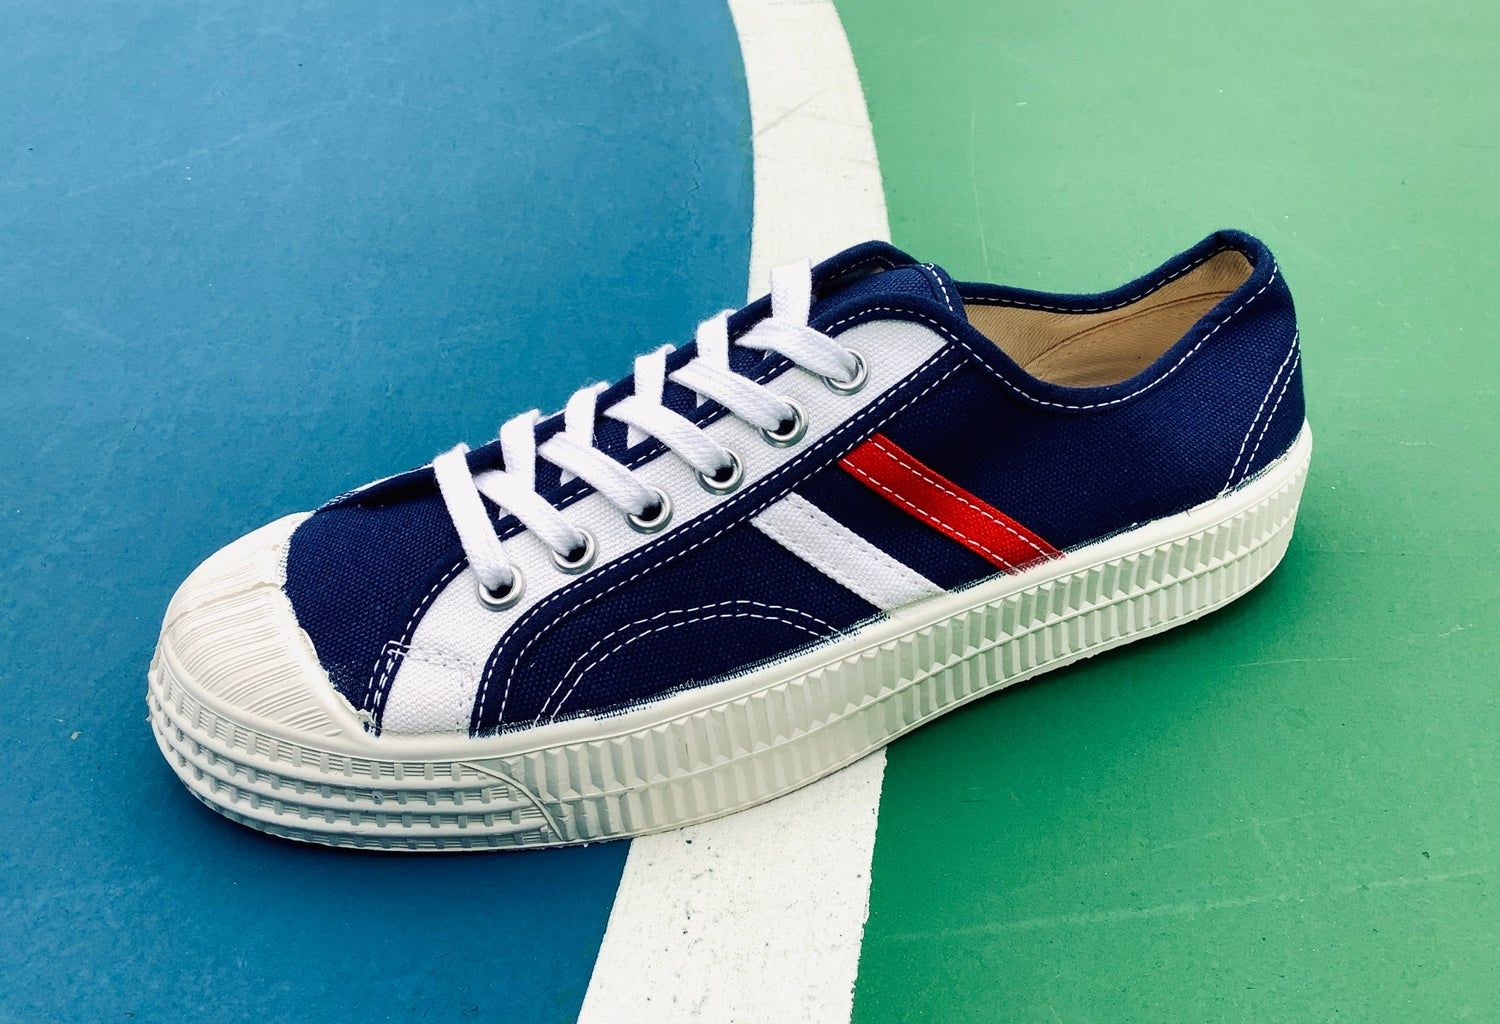 Image of VEGANCRAFT vintage lo top red white stripes navy sneaker shoes made in Slovakia